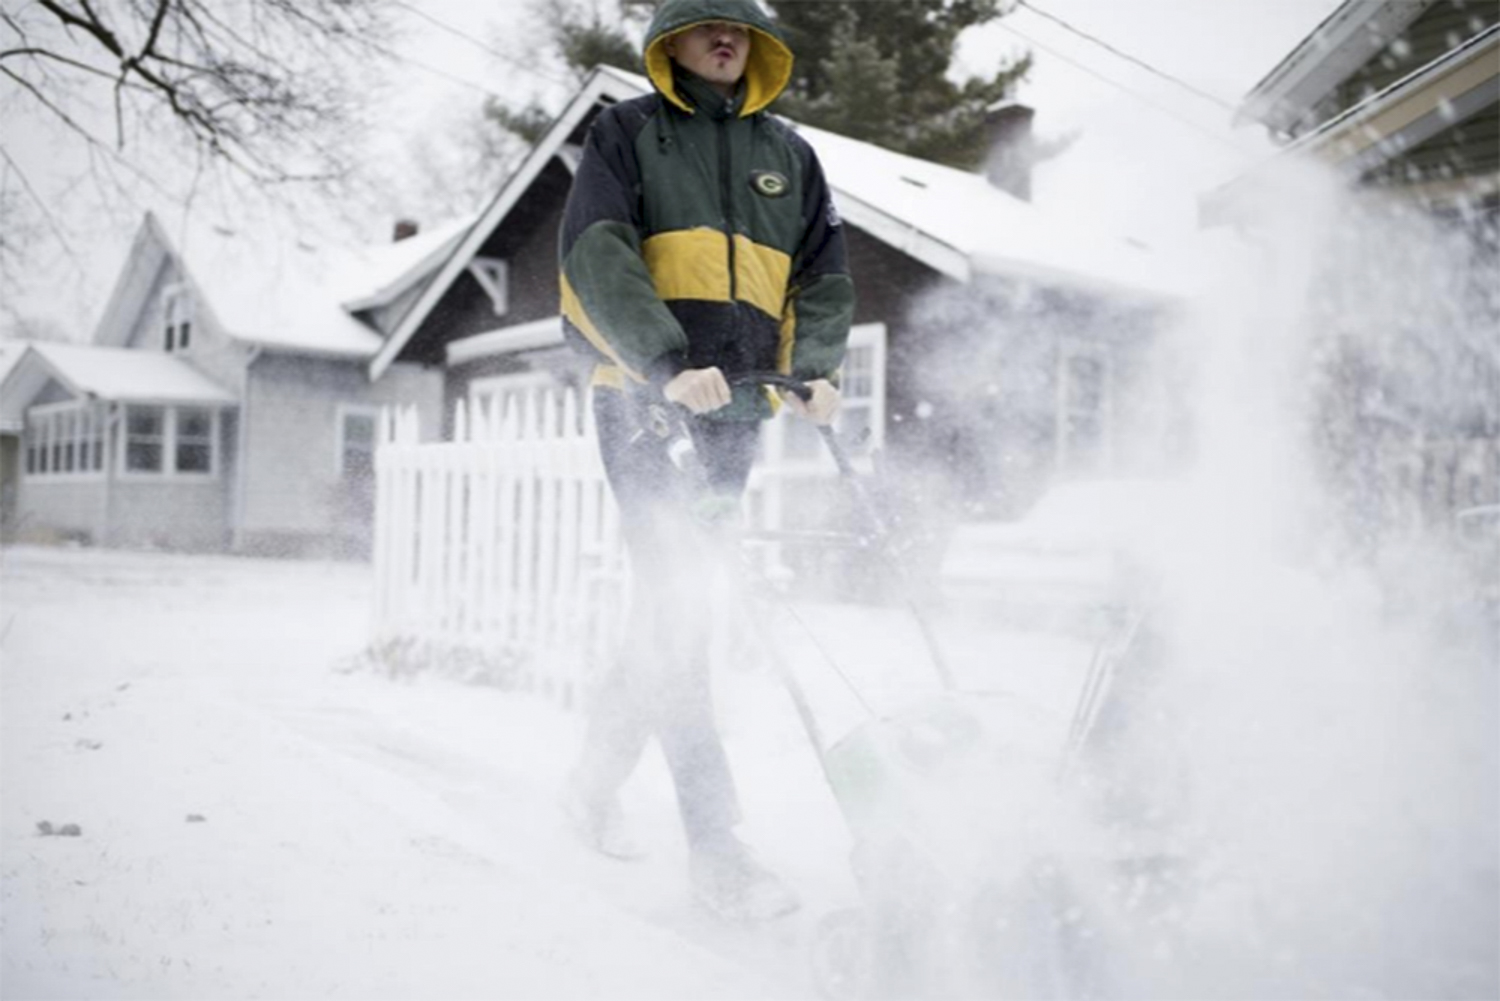 Rockford resident Fritz Marlow clears away snow from his neighbors' properties near Woodruff Avenue and Broadway on Sunday, Dec. 24, 2017, in Rockford. [Scott P. Yates/rrstar.com staff]